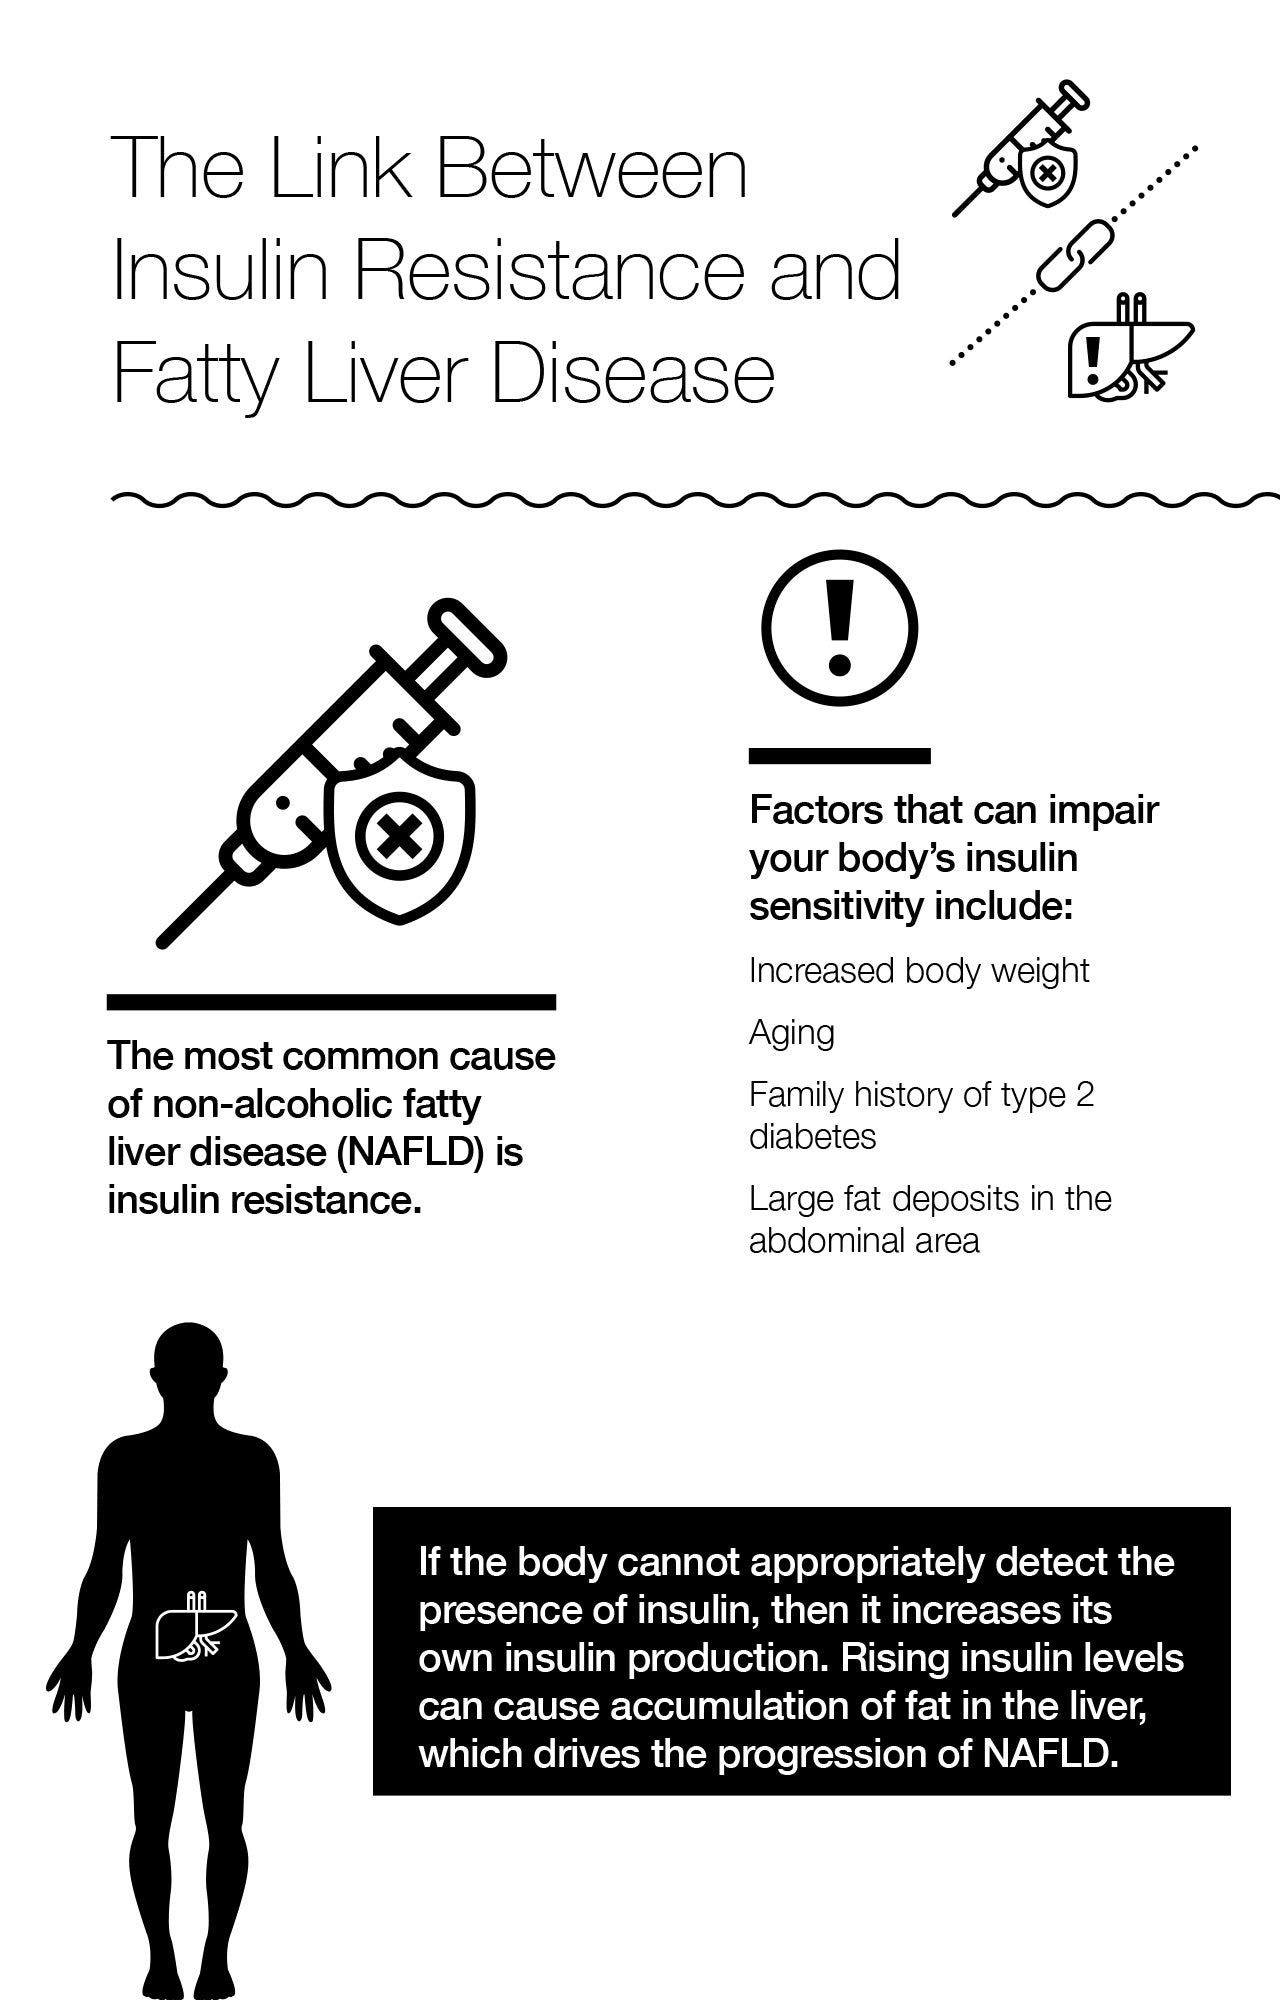 The Link Between Insulin Resistance and Fatty Liver Disease